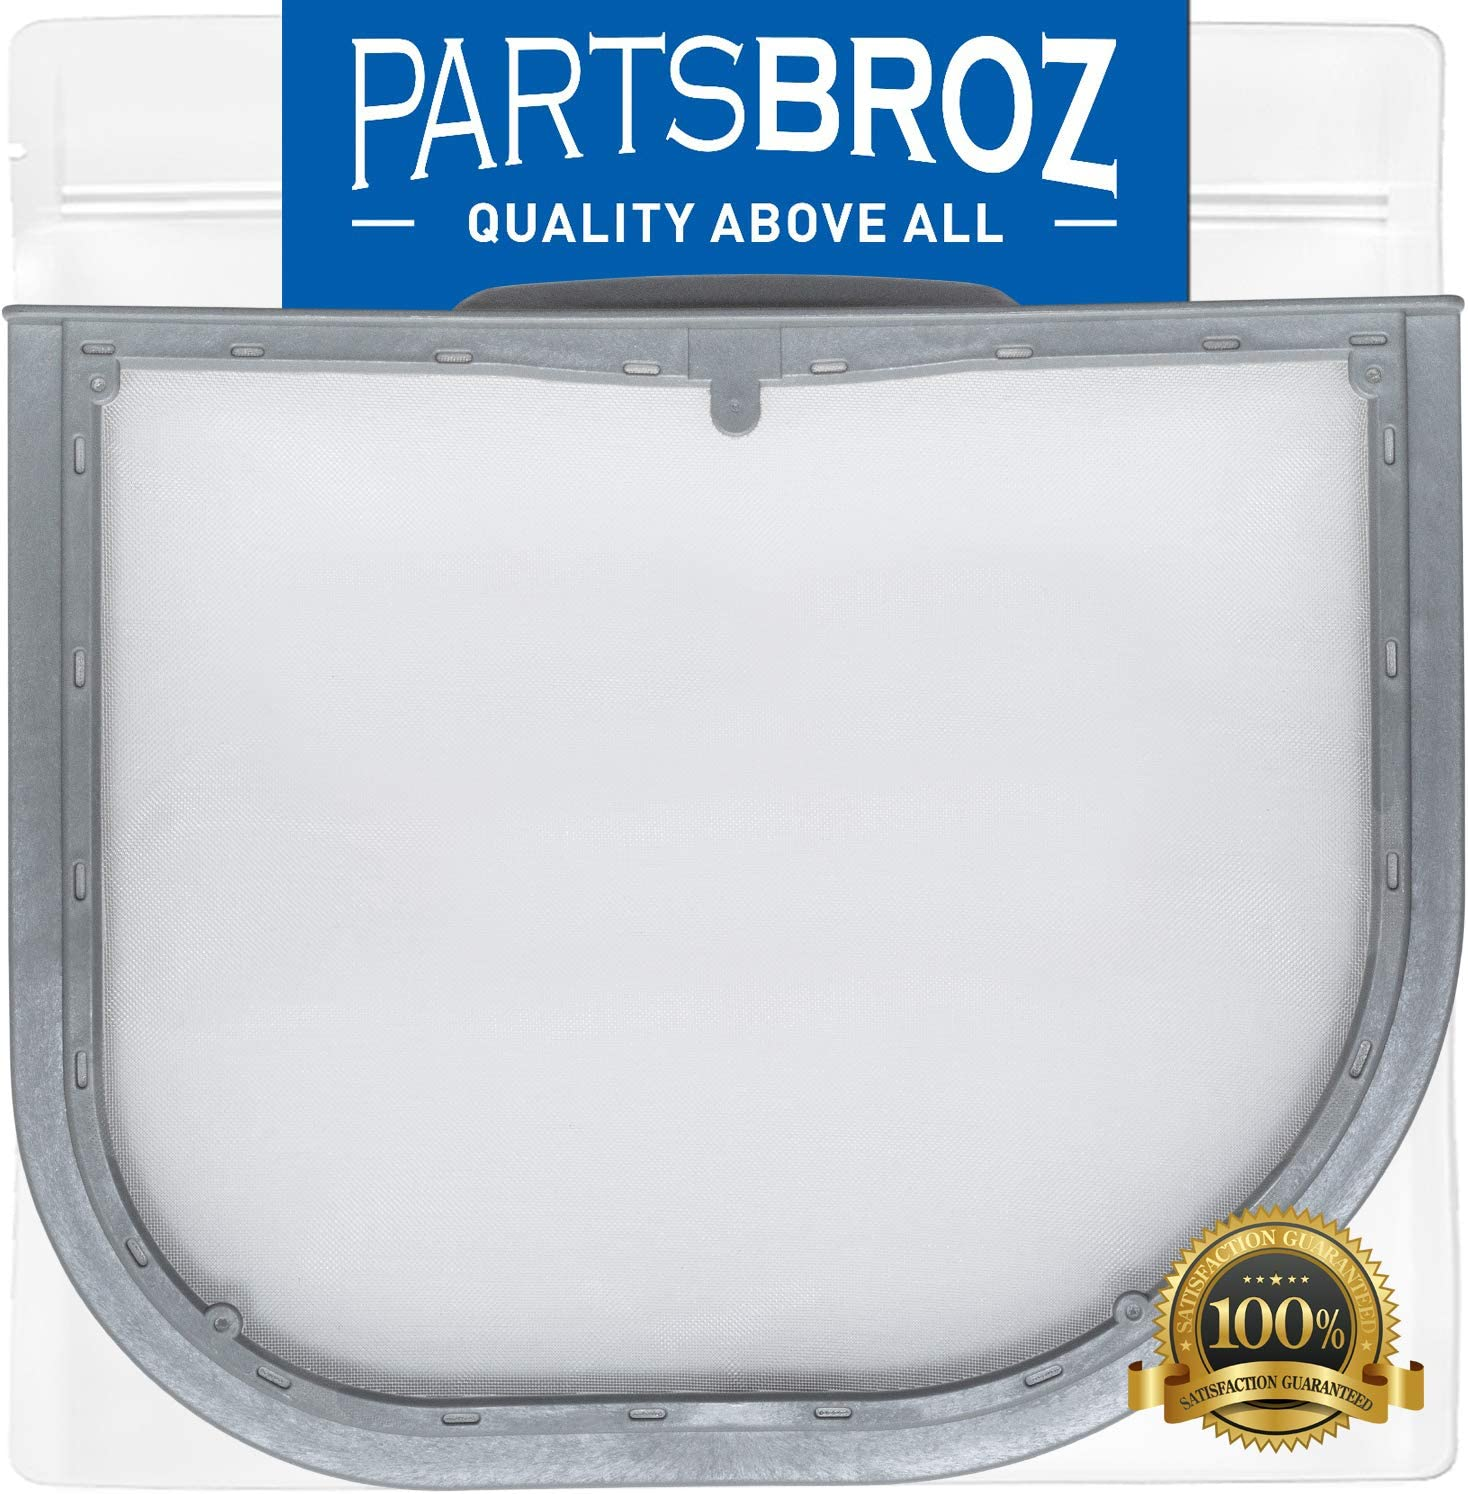 PartsBroz 5231EL1001C Dryer Lint Filter for LG & Kenmore Dryers - Replaces AP5248138, 1668214, AH3527575